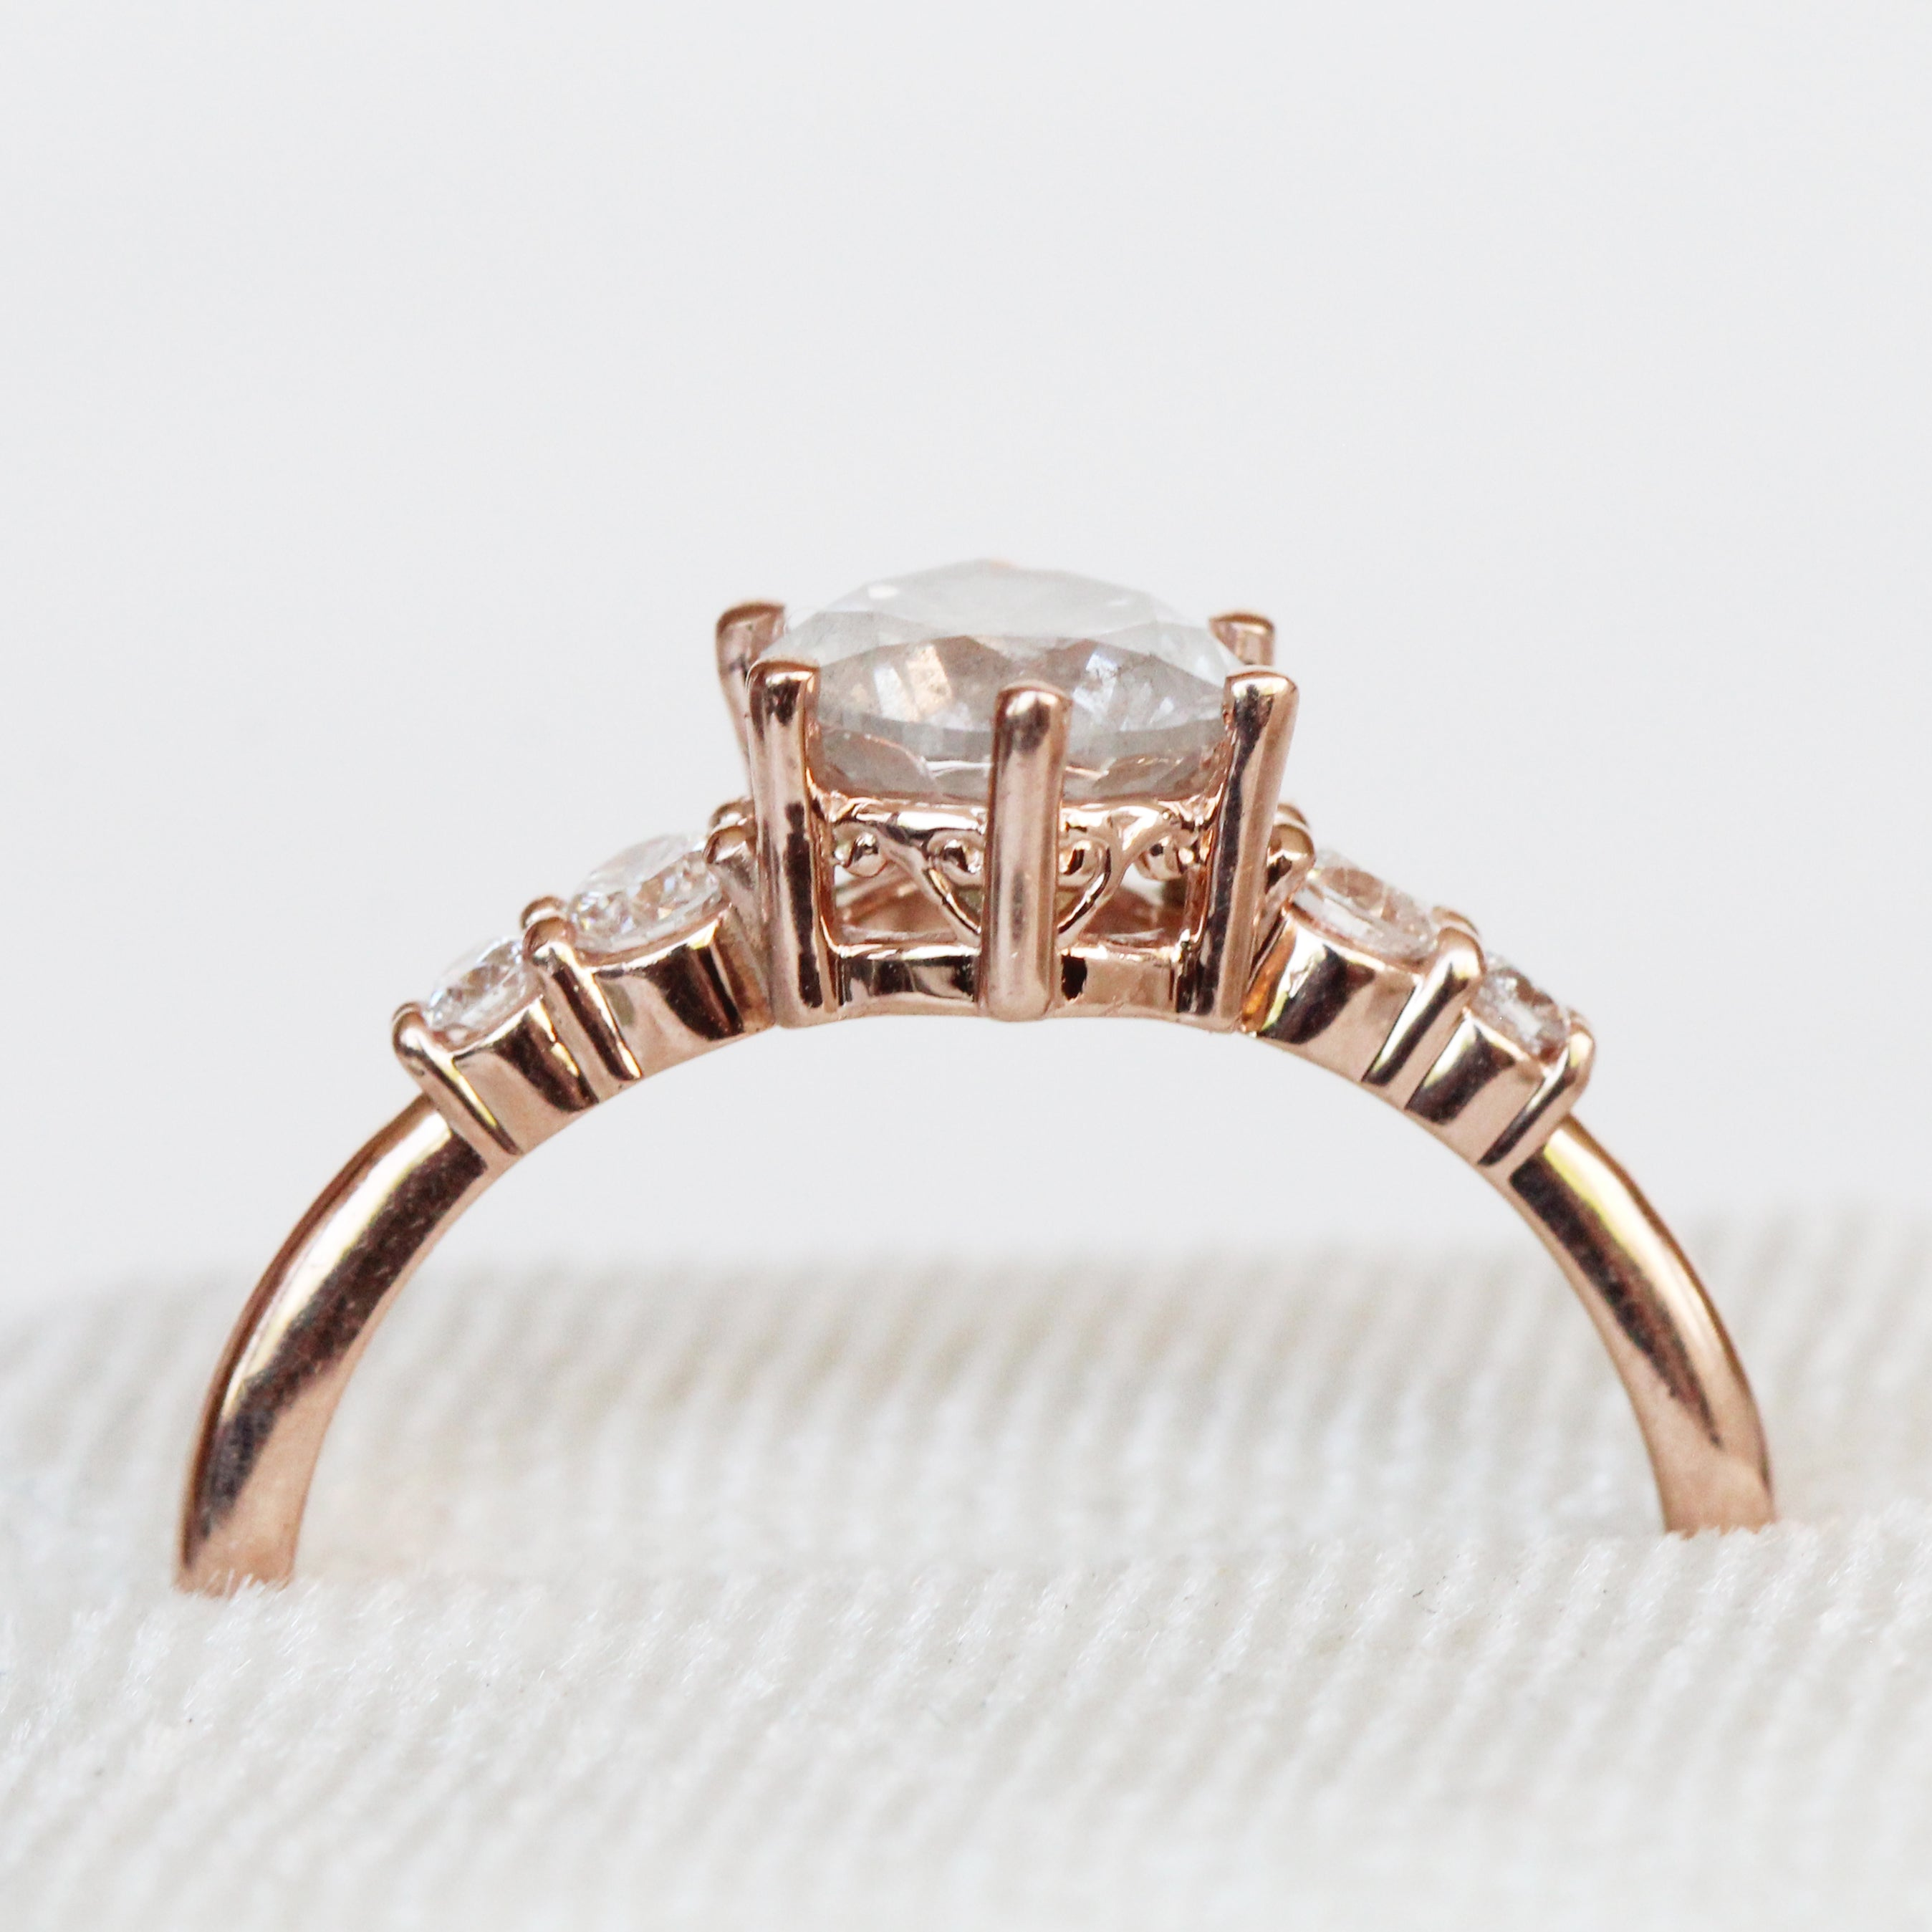 Samantha Louisa ring with 1.05 carat natural brilliant round celestial diamond in 14k rose gold - ready to size and ship - Celestial Diamonds ® by Midwinter Co.